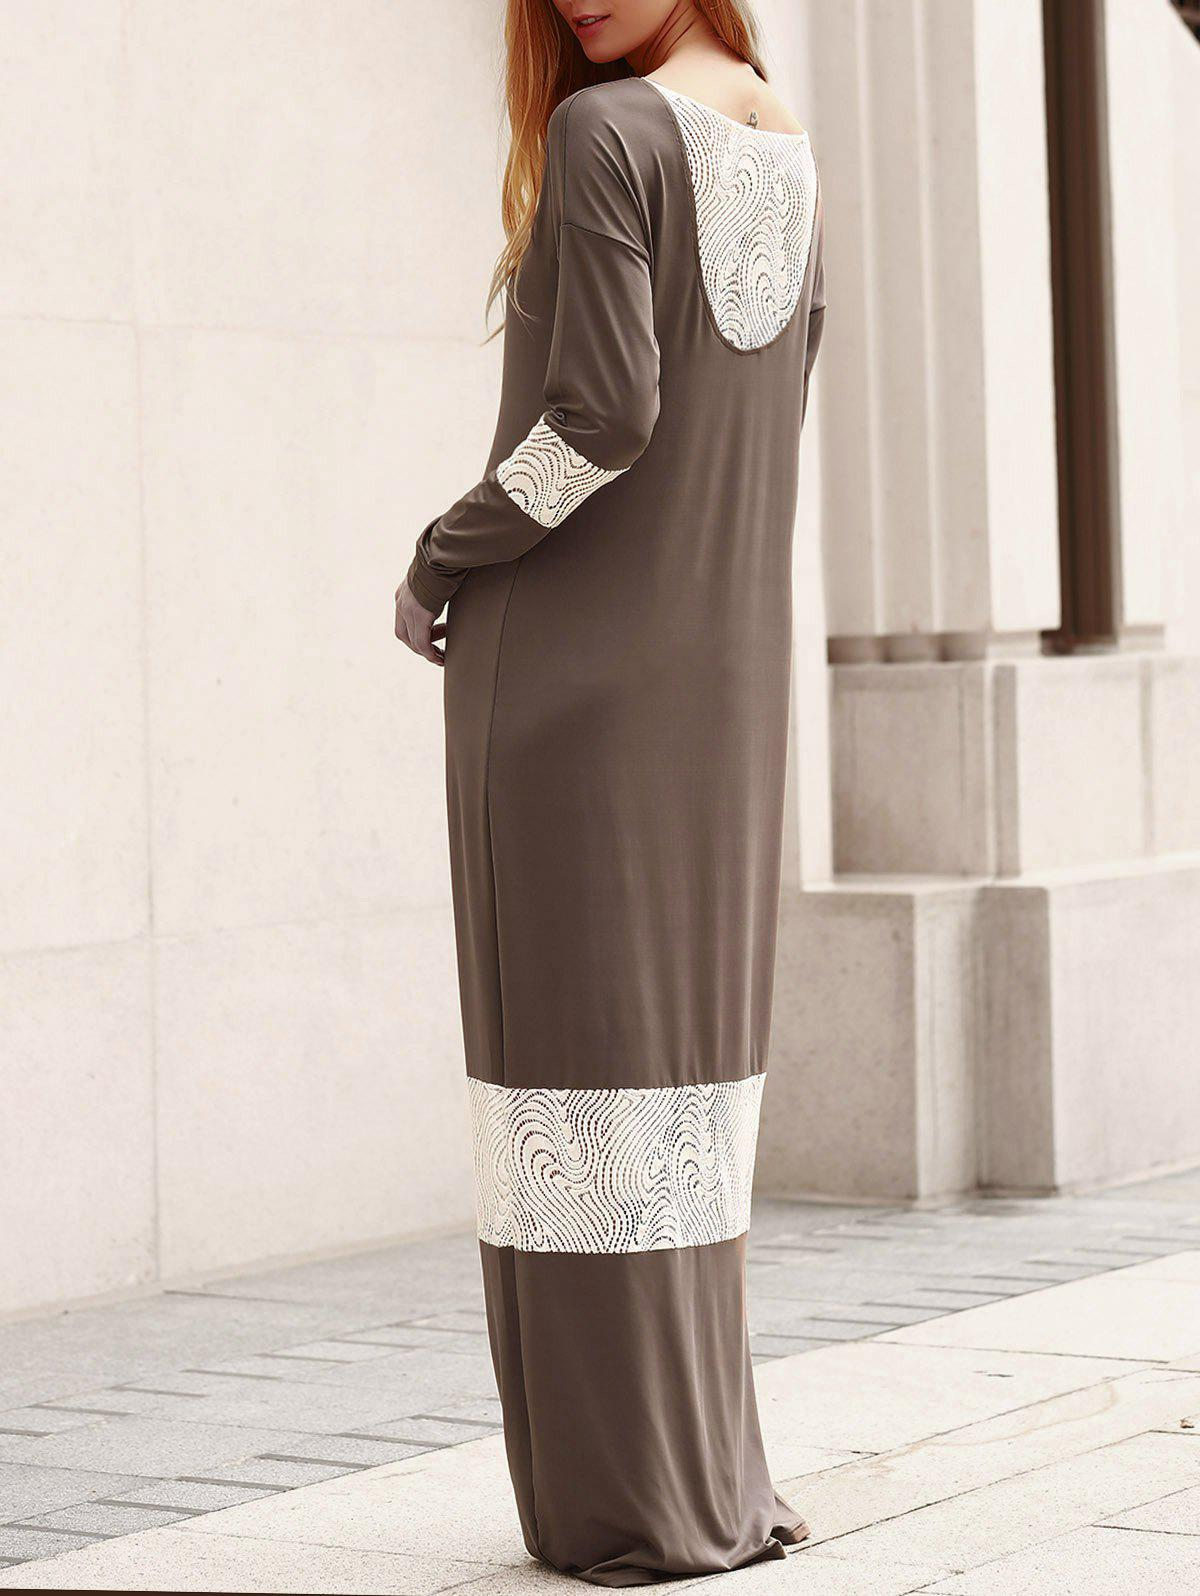 Stylish Scoop Collar Long Sleeve Lace Splicing Loose-Fitting Women's Dress - M GREY/WHITE